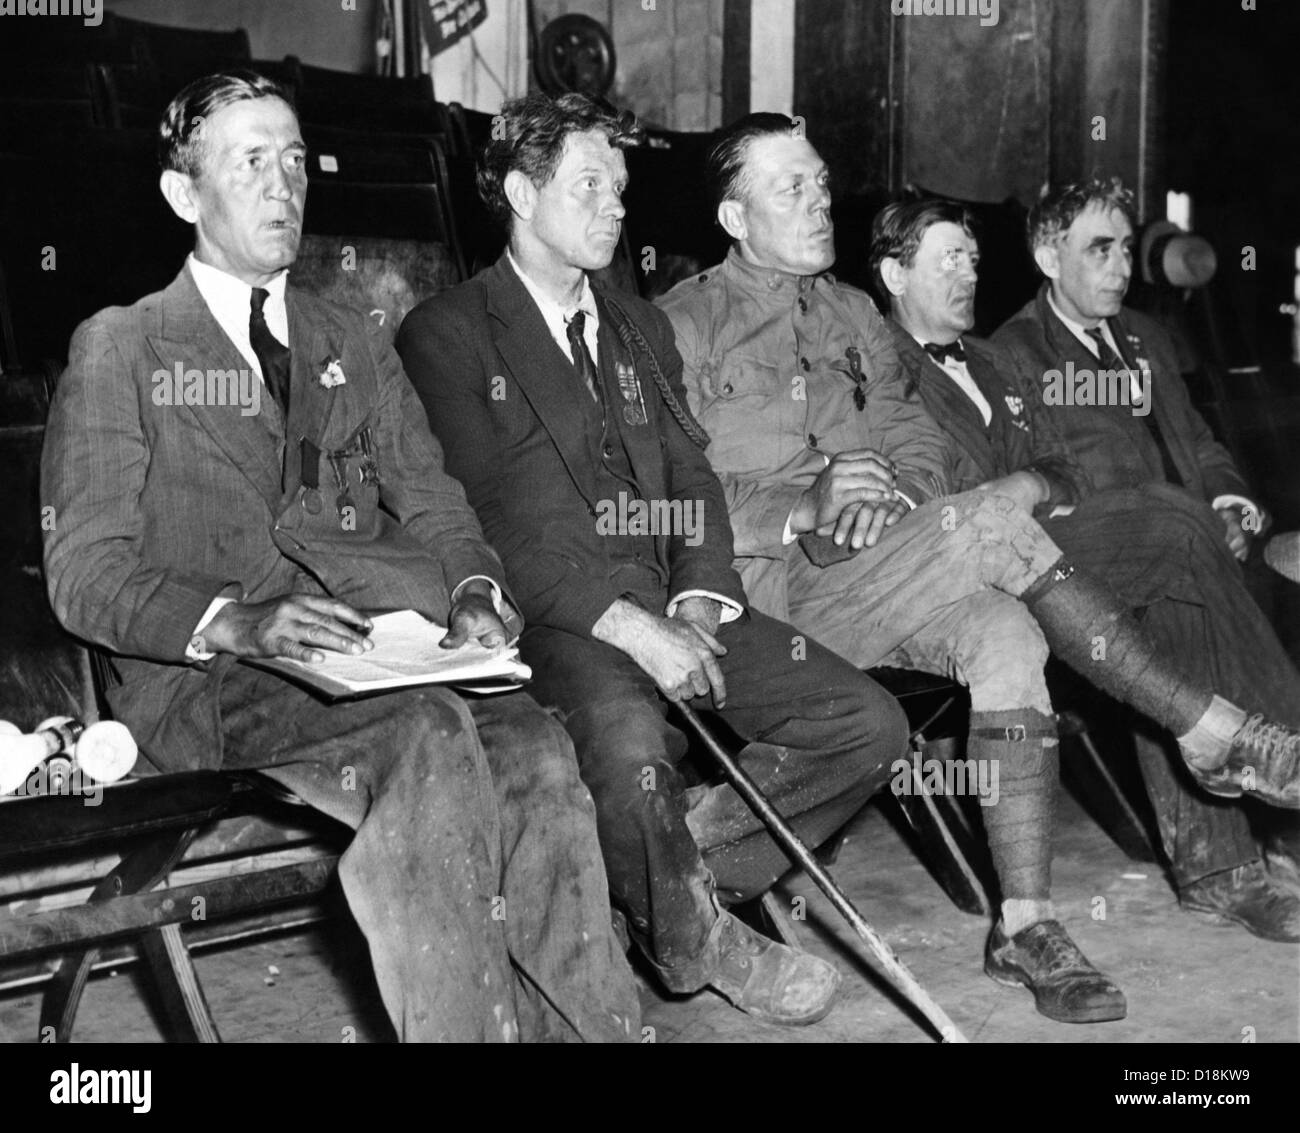 Wounded and decorated Veterans at Bonus Army Convention. They are among 1,200 from the Bonus Camp at Ft. Hunt, Virginia - Stock Image